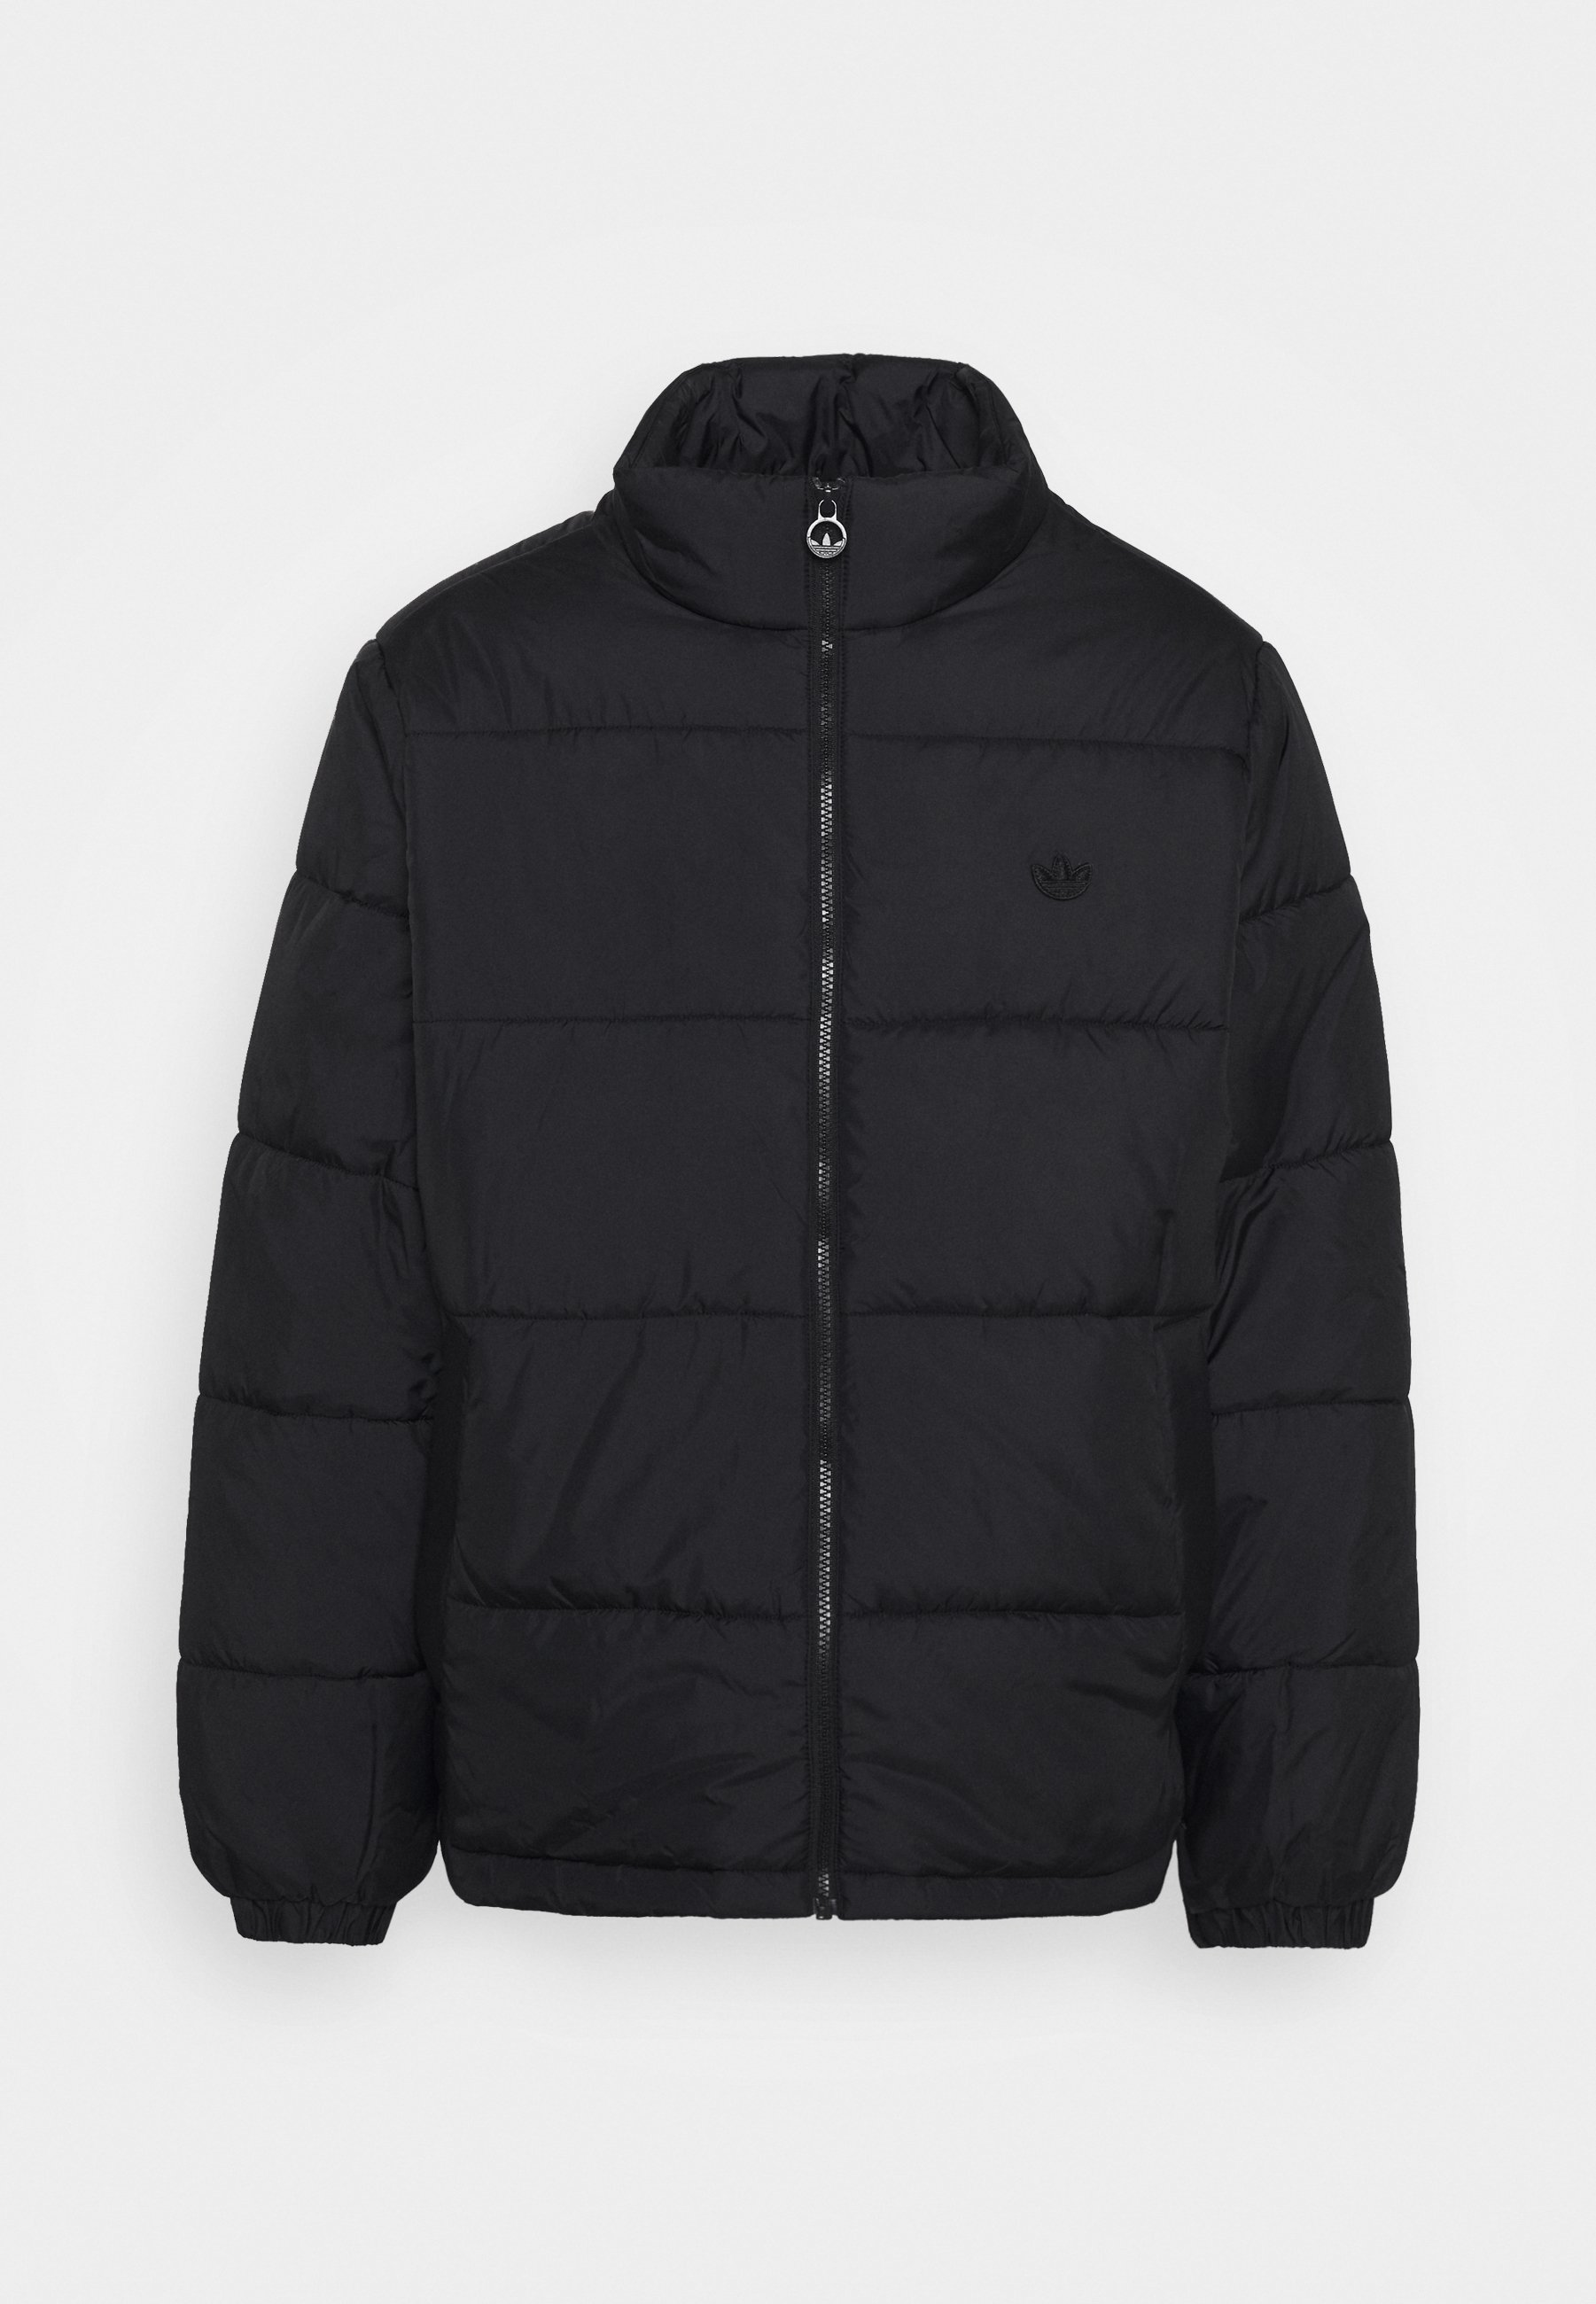 Adidas Originals Pad Stand Puff Winter Jacket Black Zalando Co Uk